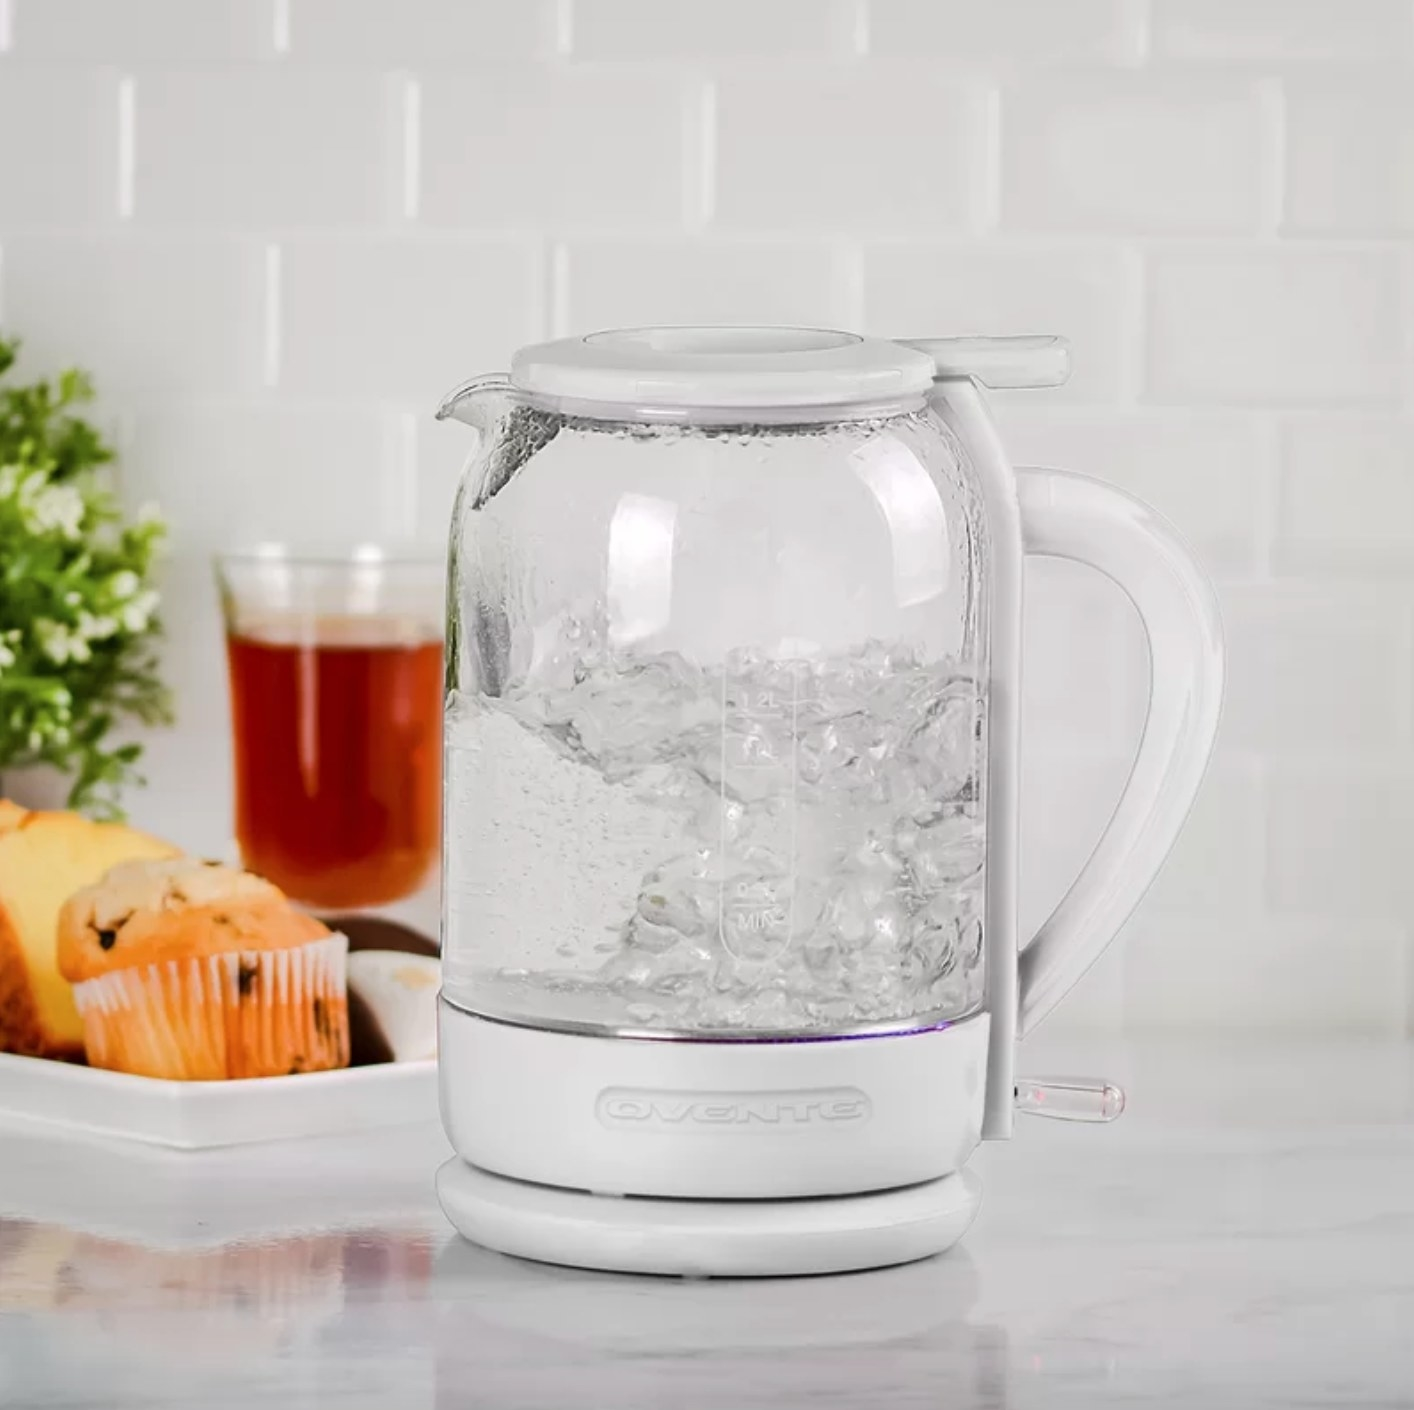 The electric tea kettle in white